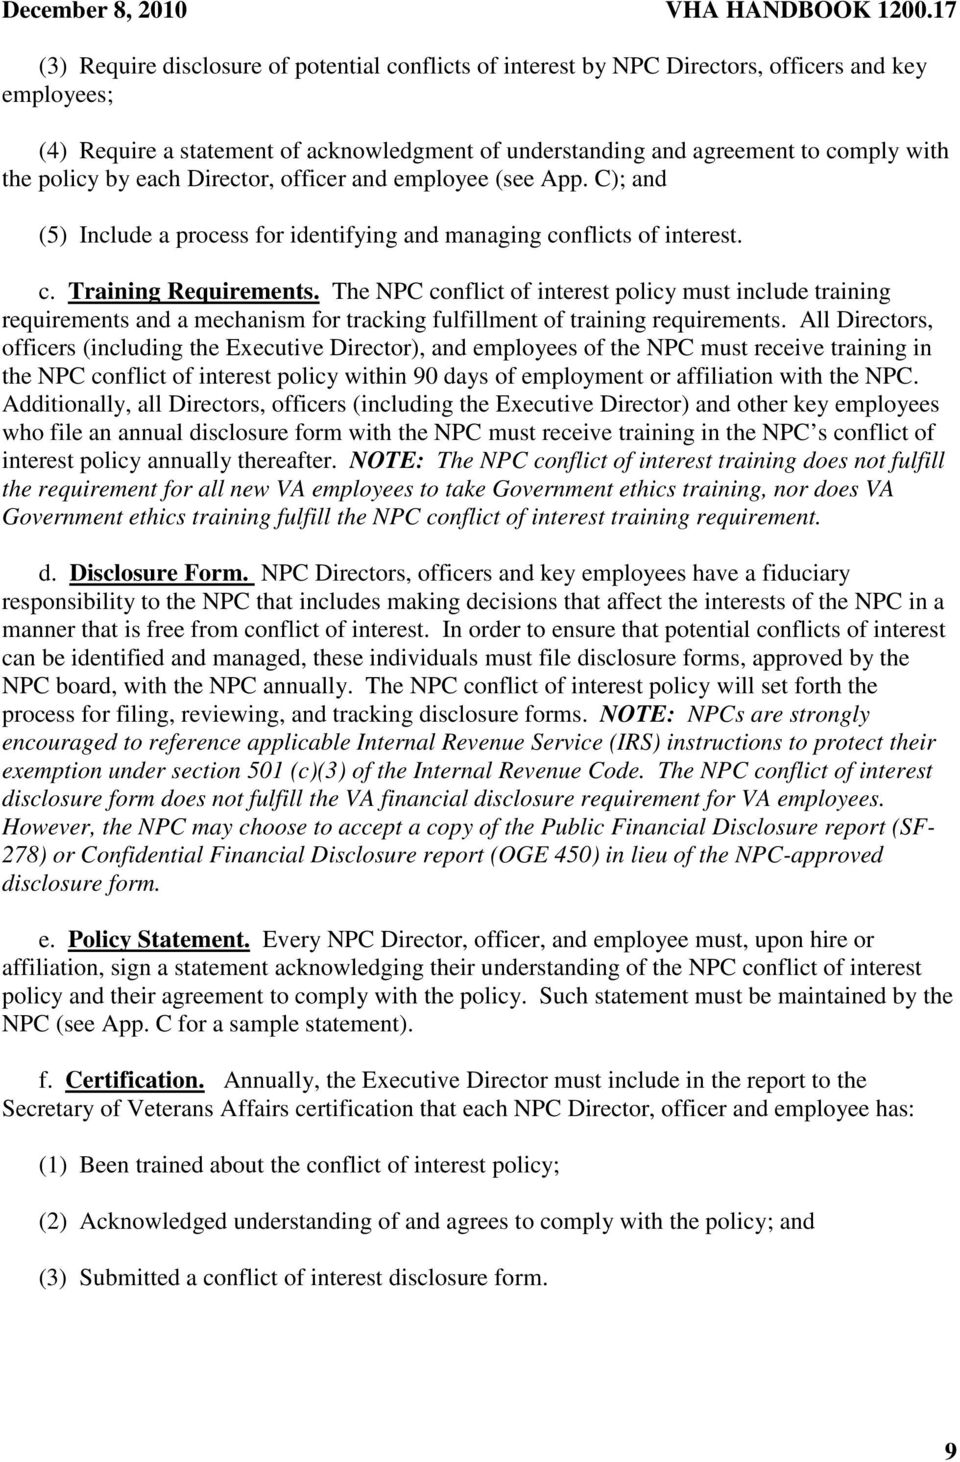 The NPC conflict of interest policy must include training requirements and a mechanism for tracking fulfillment of training requirements.